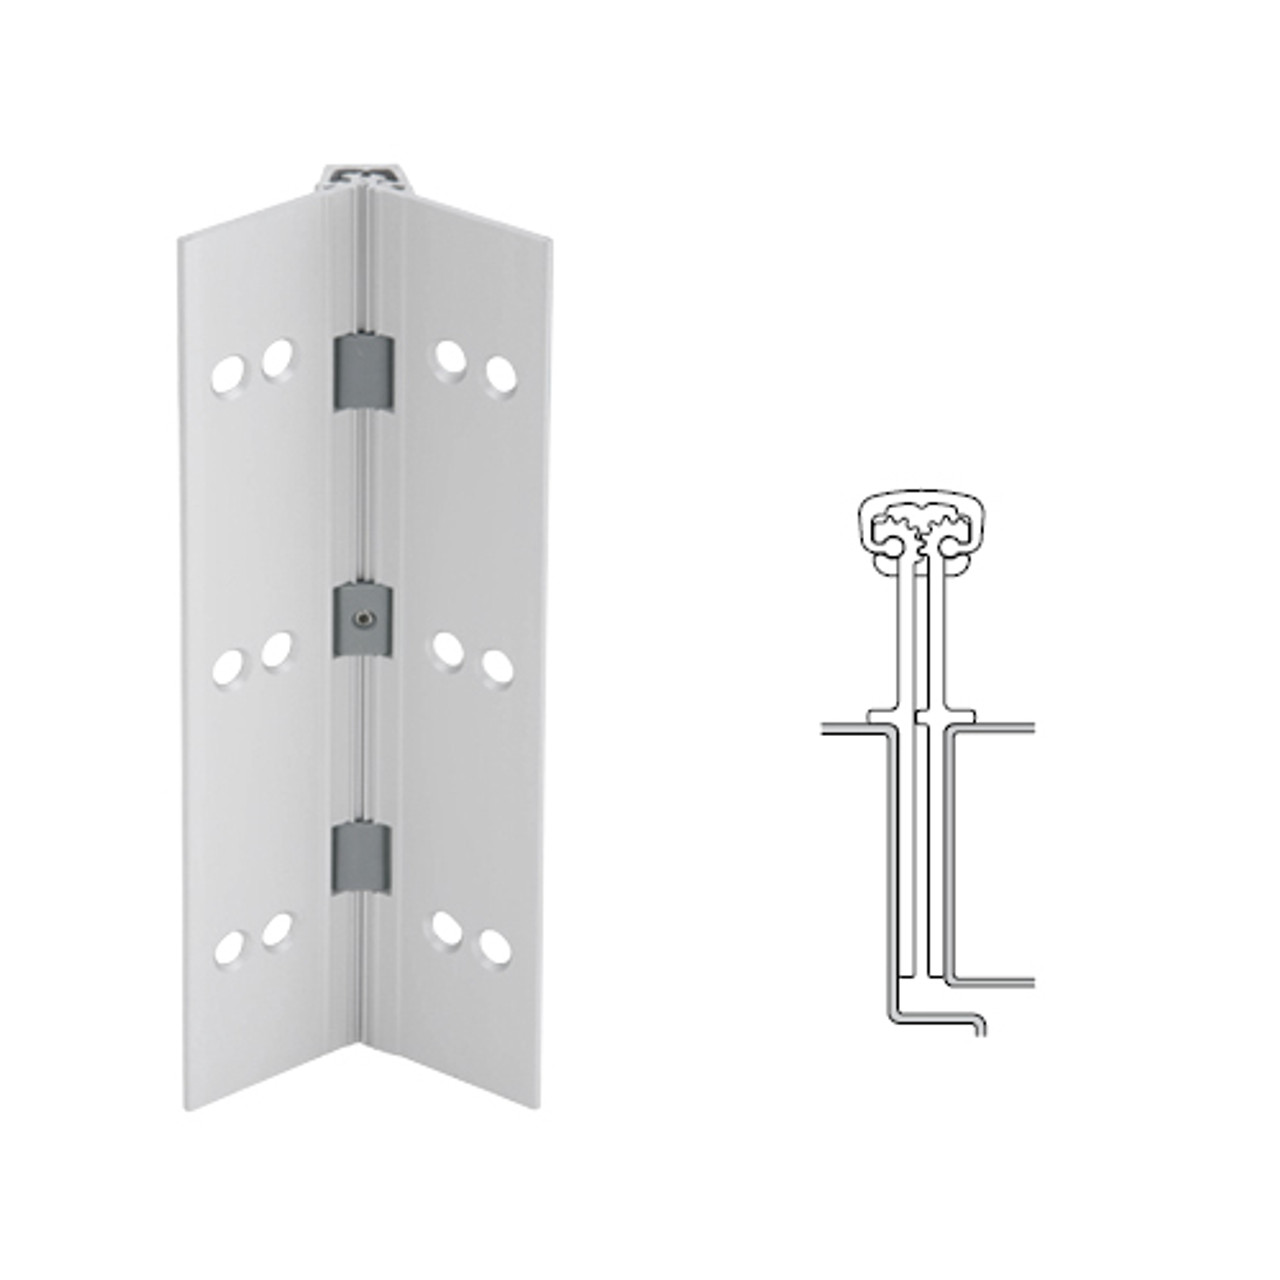 040XY-US28-85-TEKWD IVES Full Mortise Continuous Geared Hinges with Wood Screws in Satin Aluminum